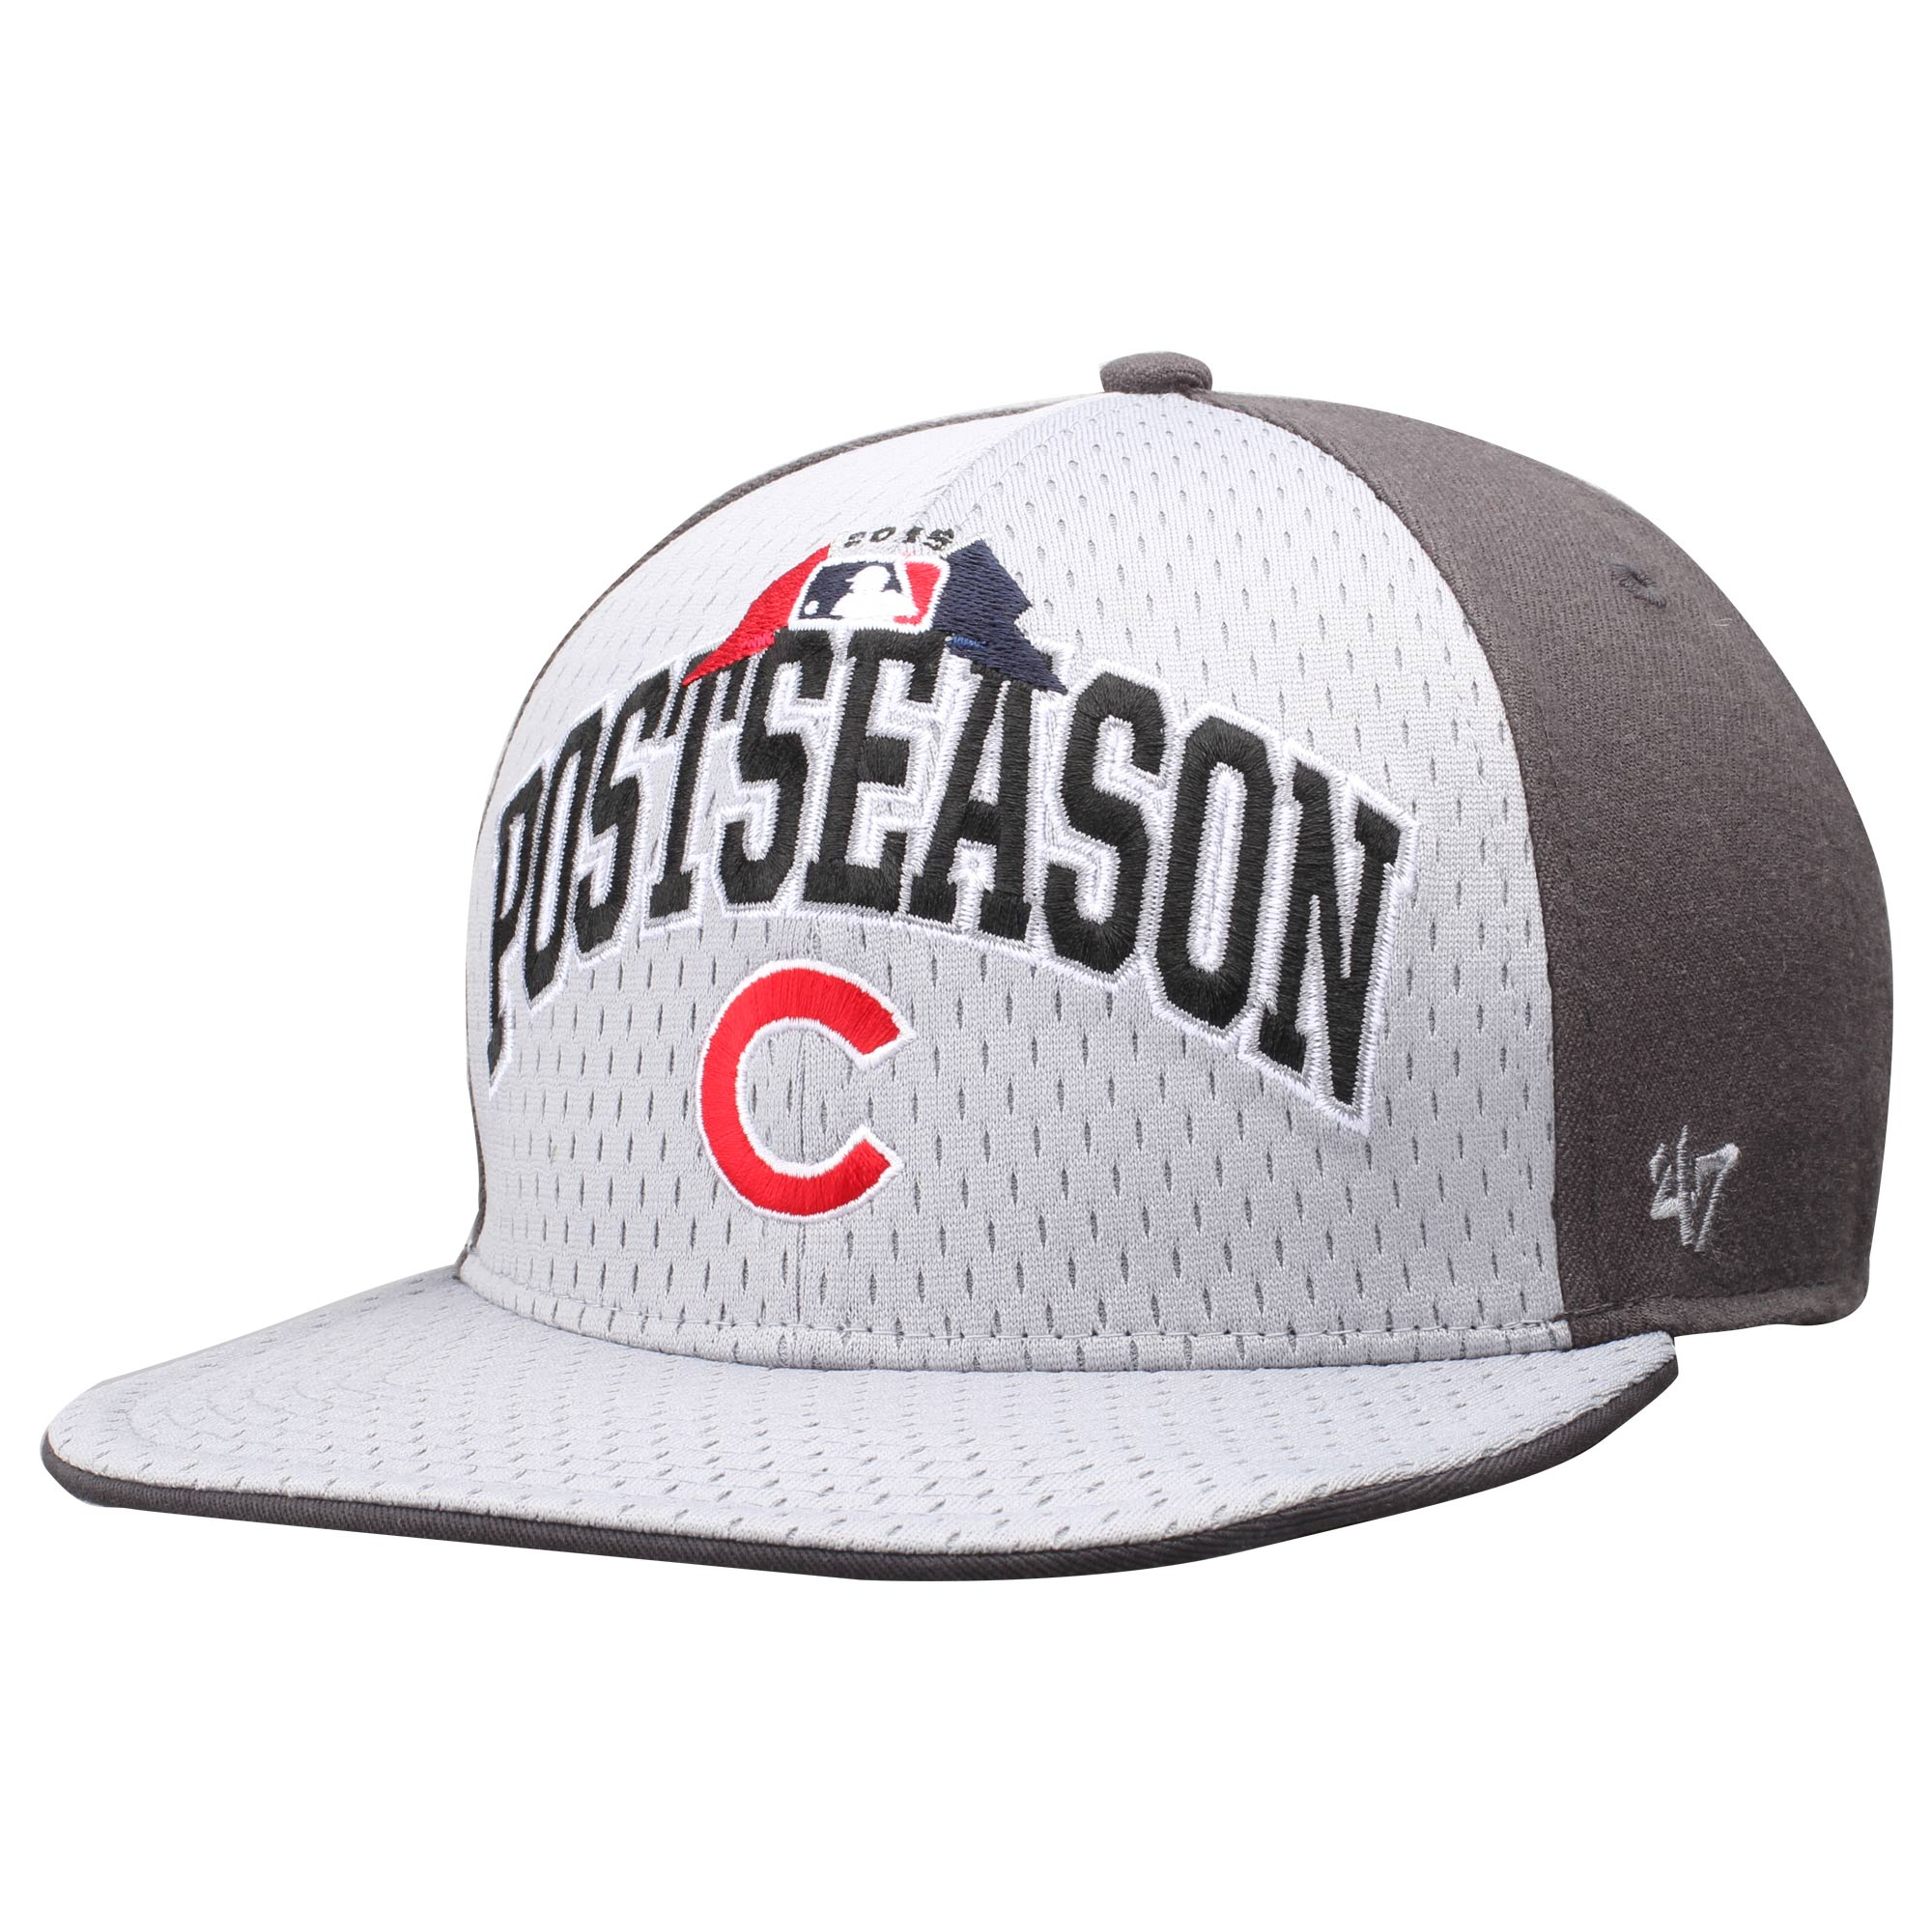 Chicago Cubs '47 2015 MLB Postseason Clincher Captain Hat - White/Gray - OSFA